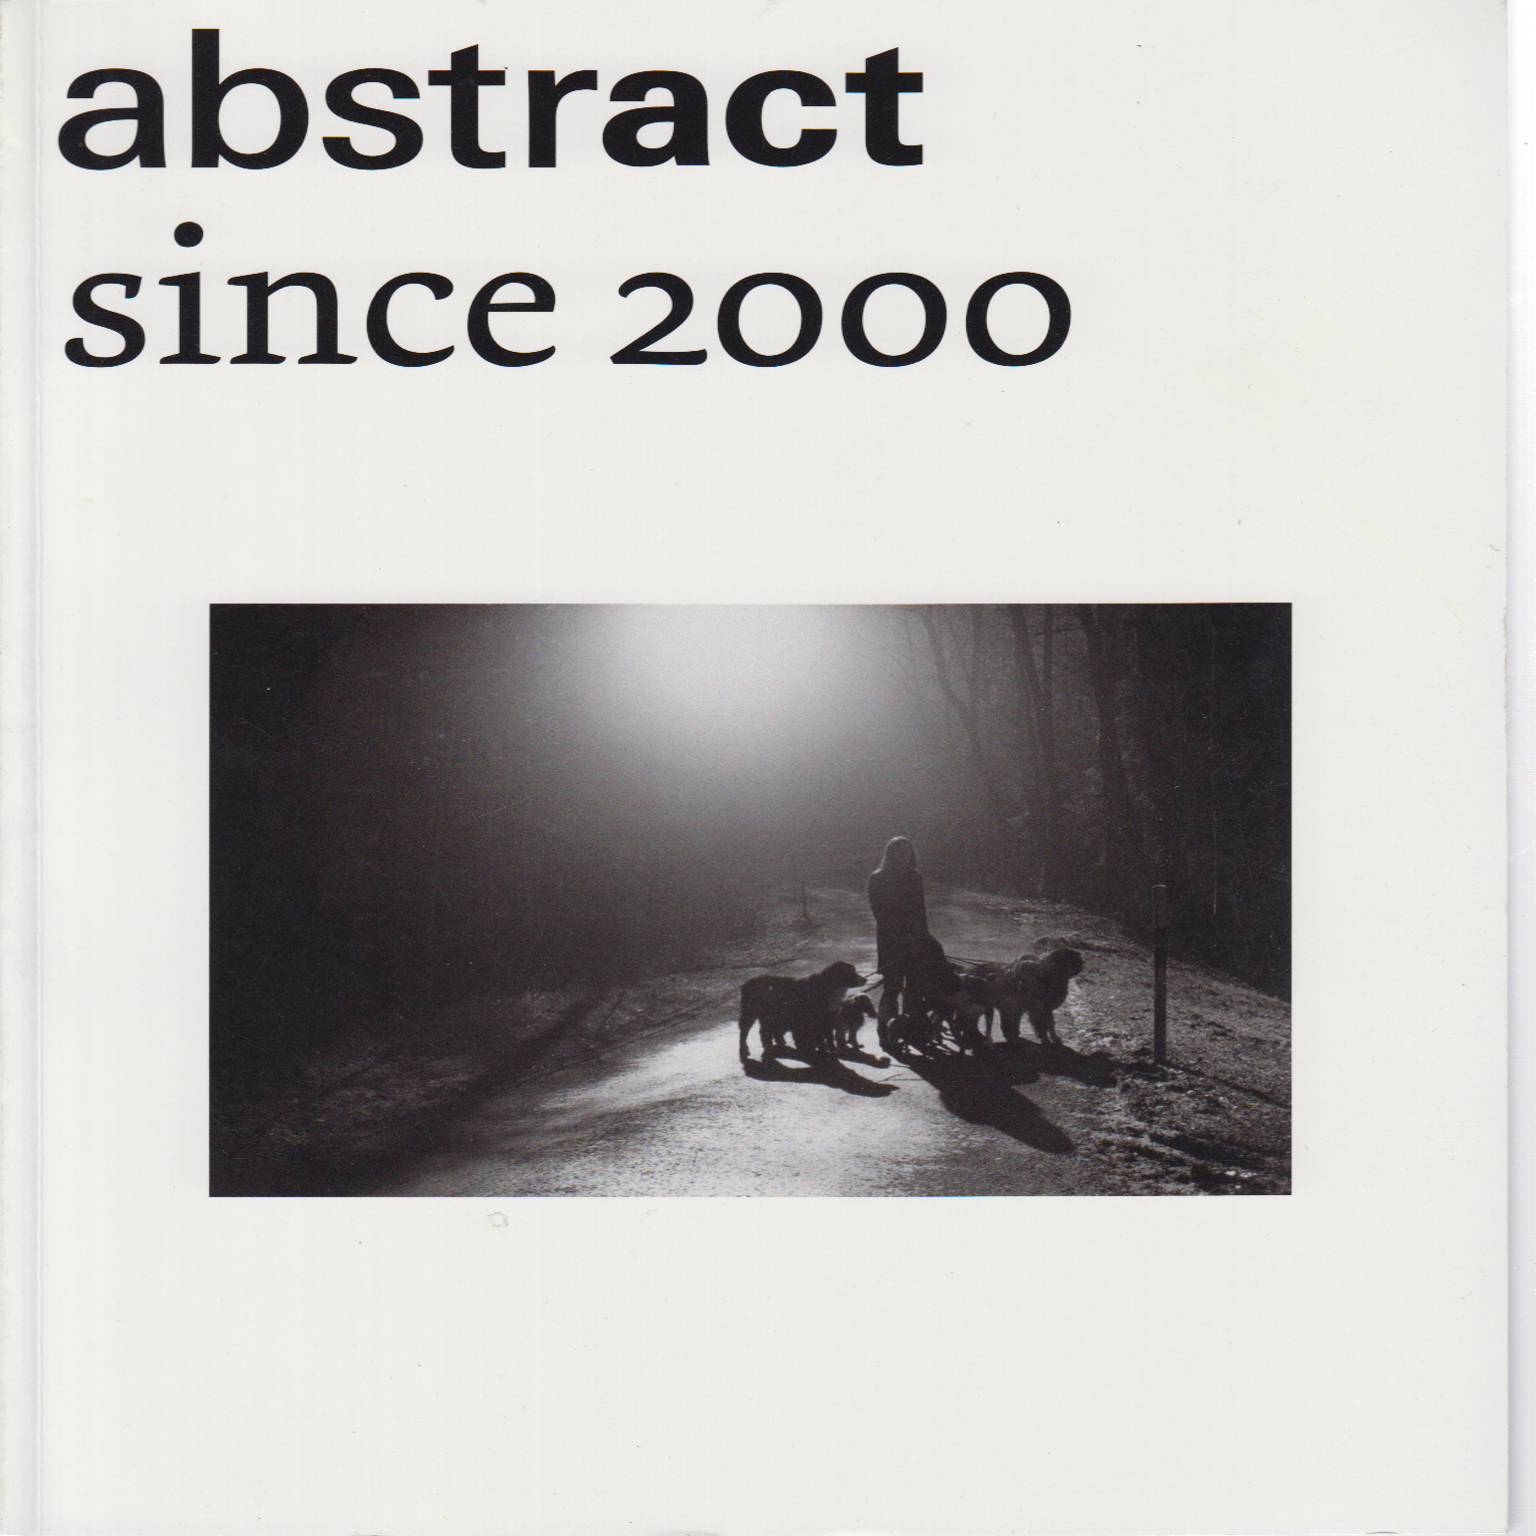 Abstract since 2000, the AA.VV.